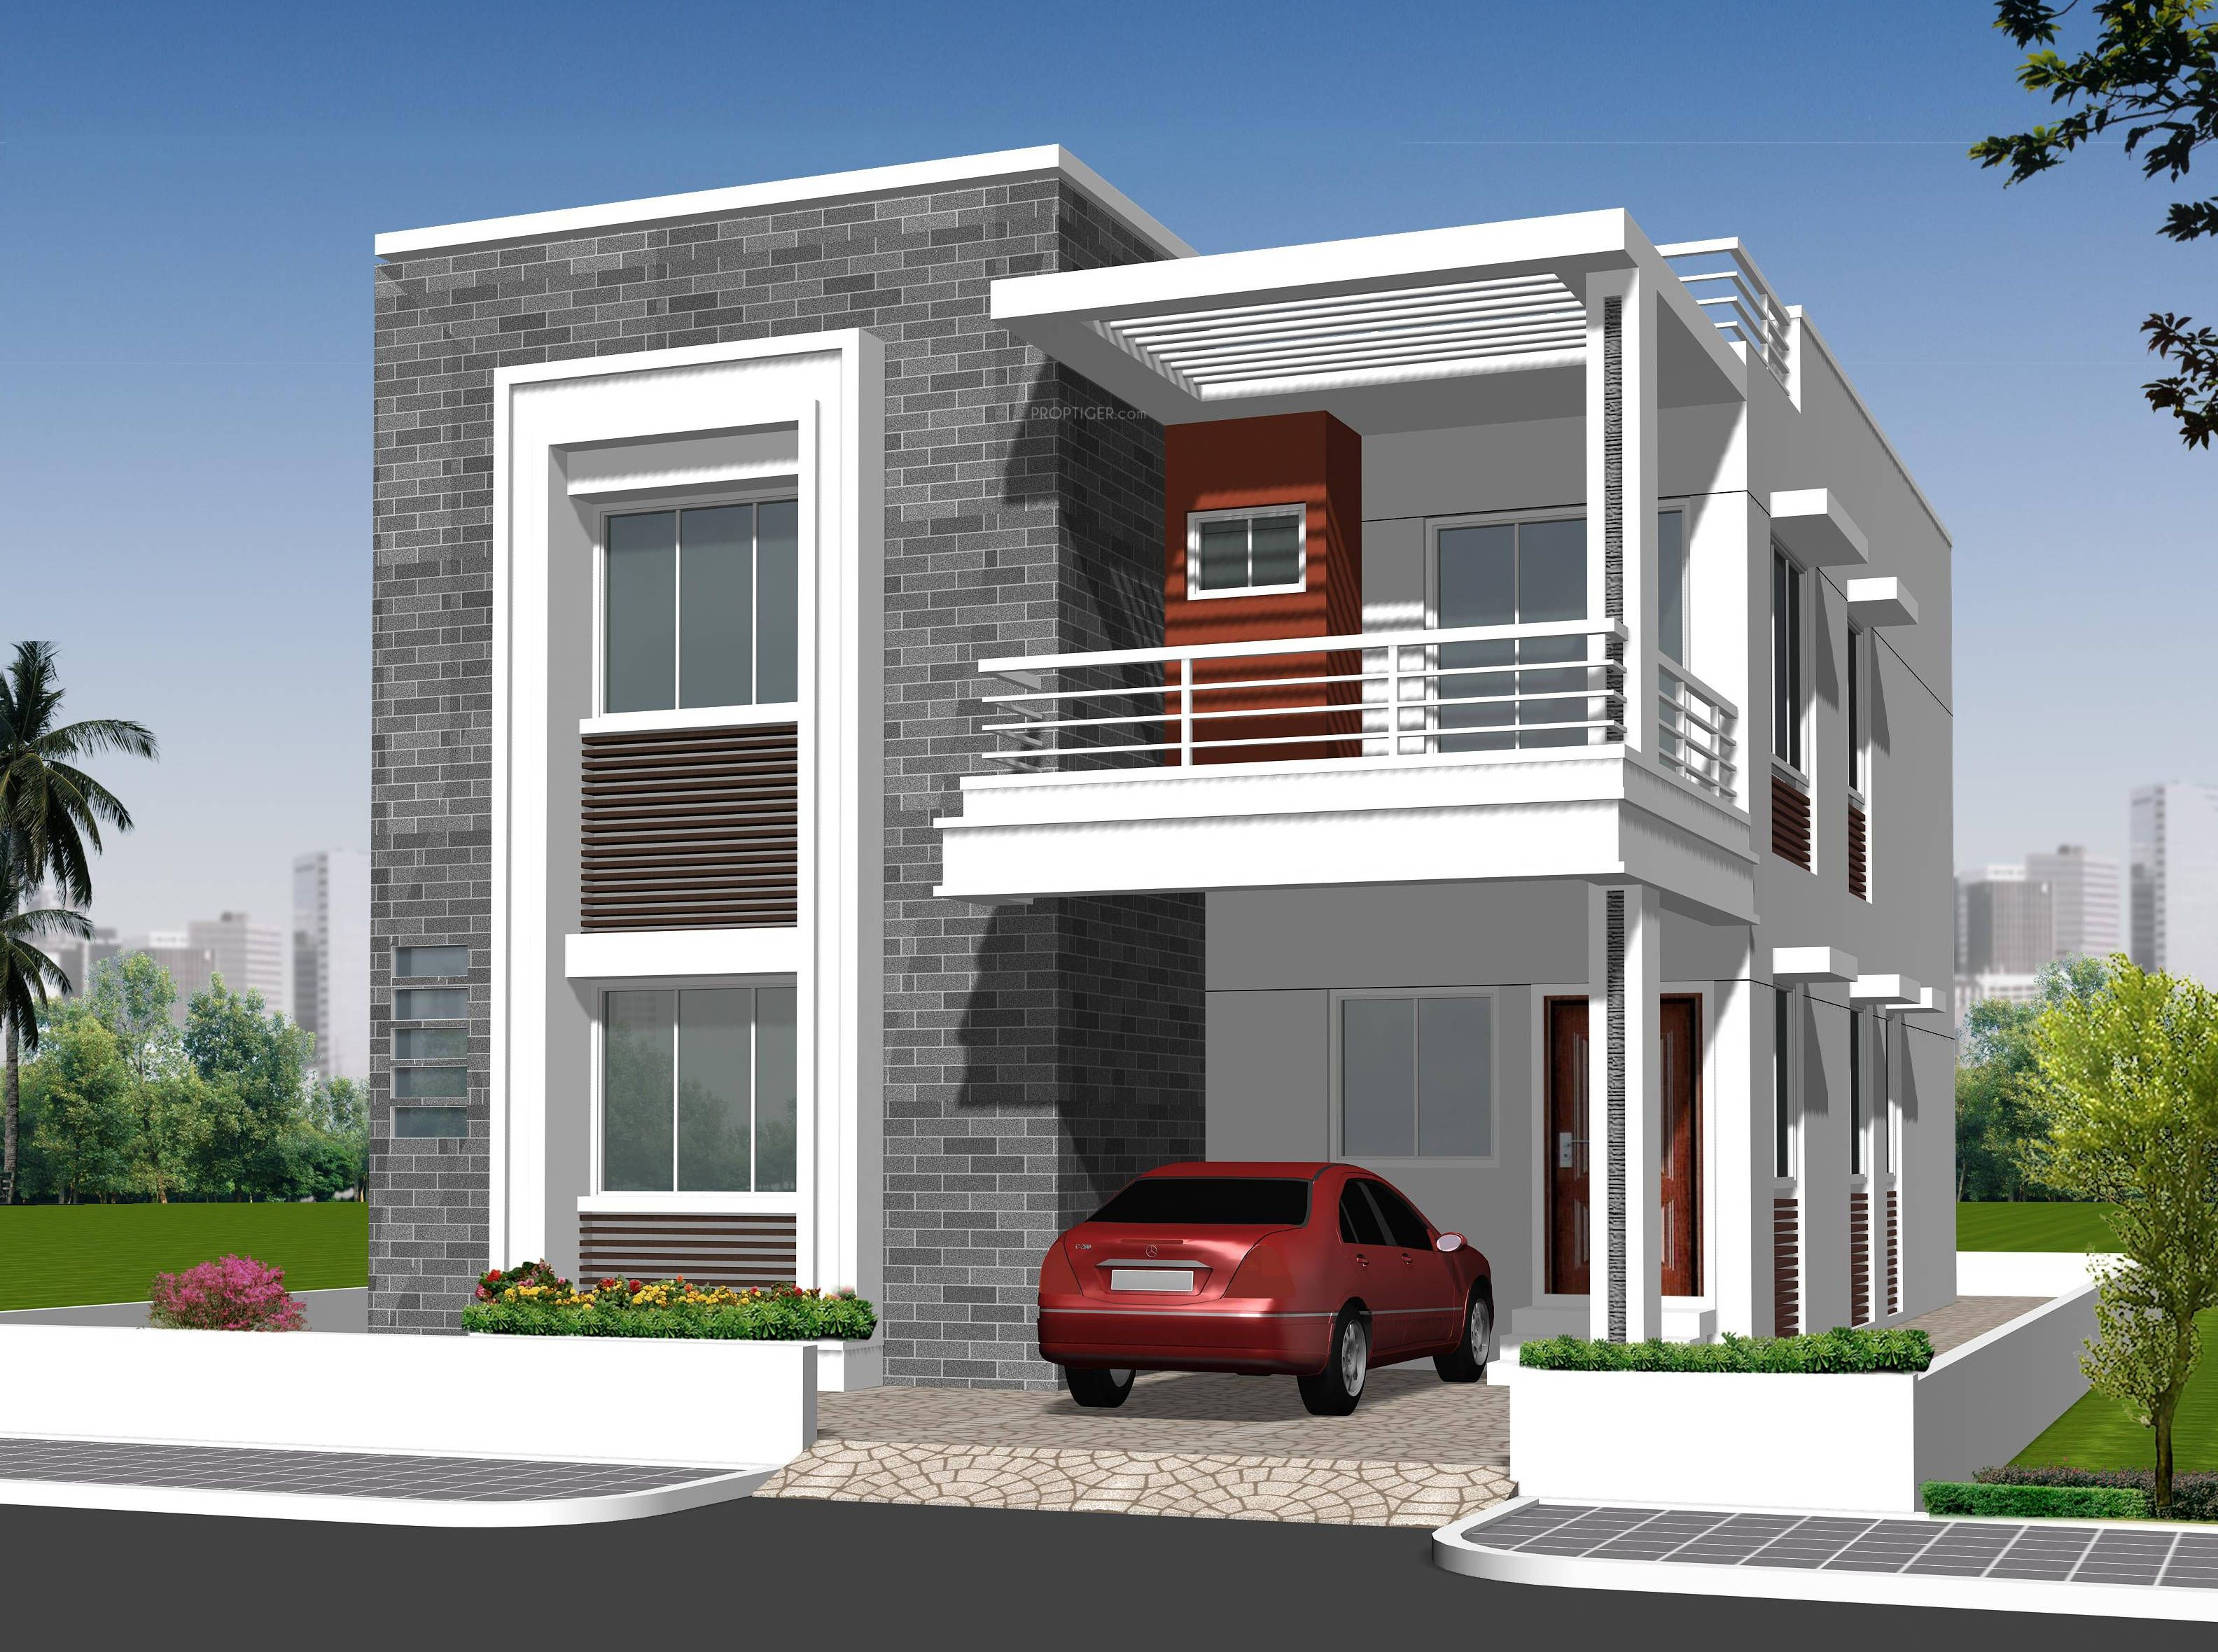 Bhk Villa For Sale Ajasra Homes Akash Vihar Kottayam